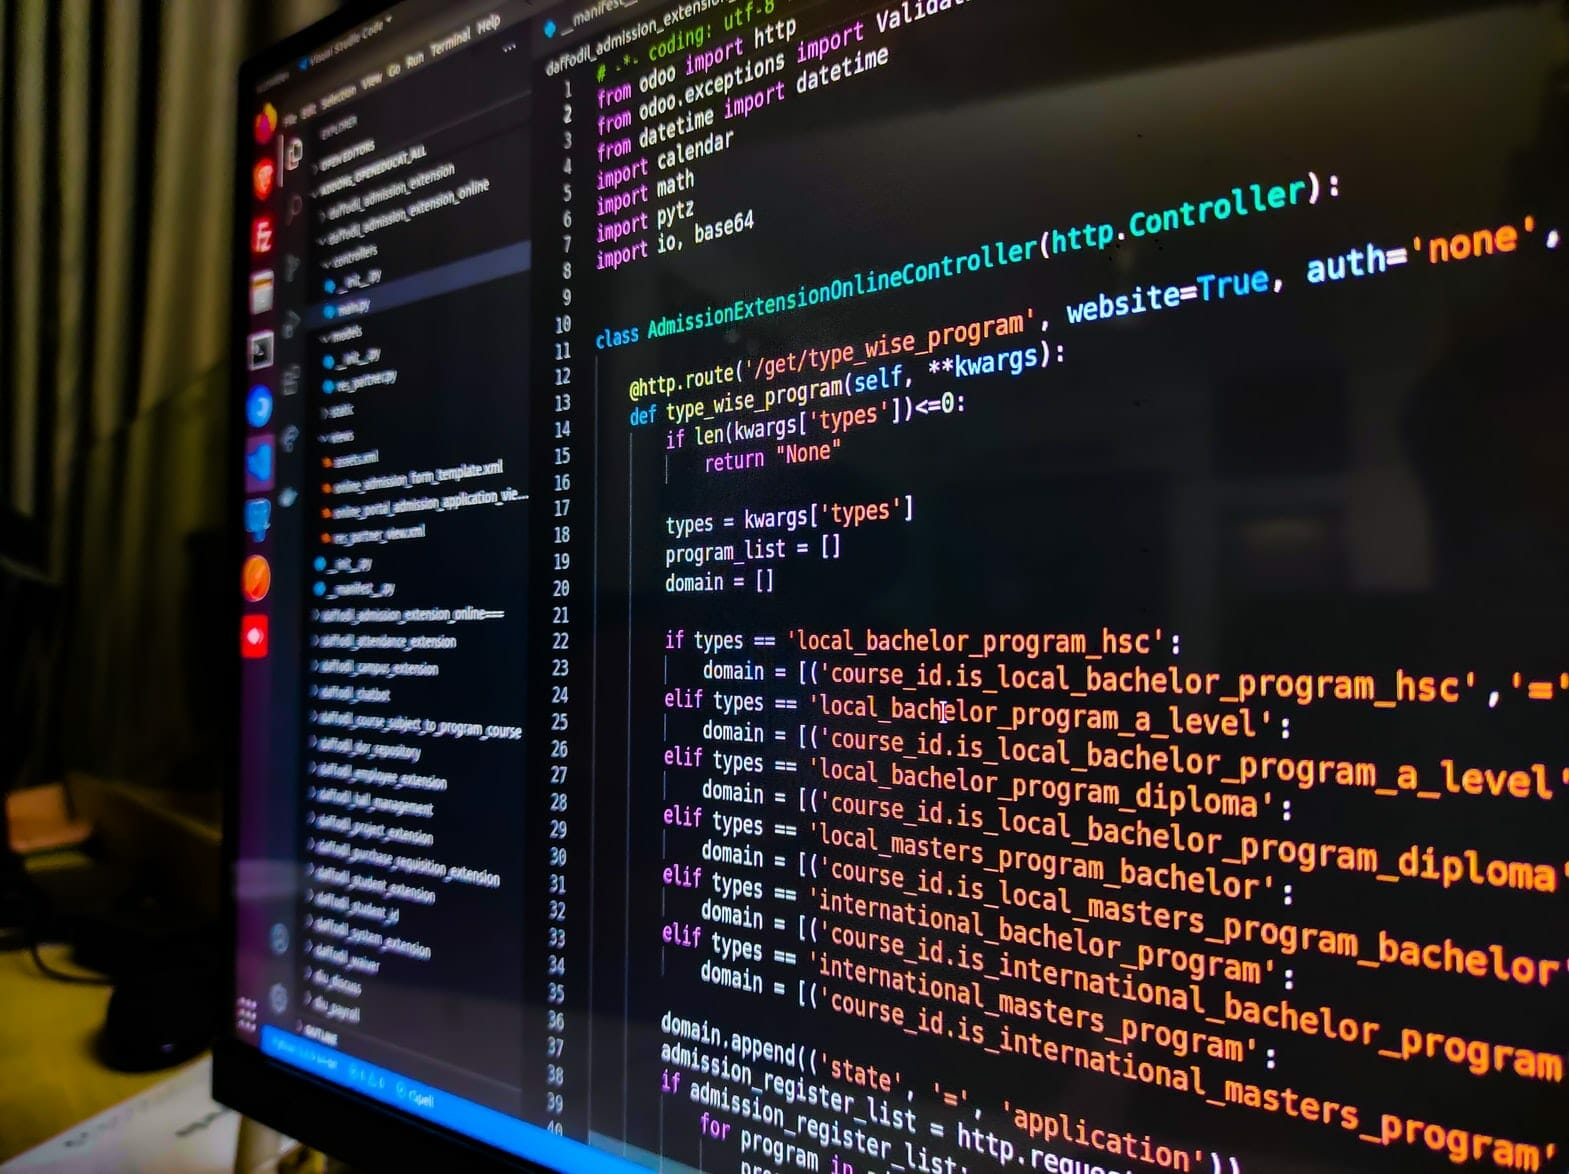 Code background on the screen